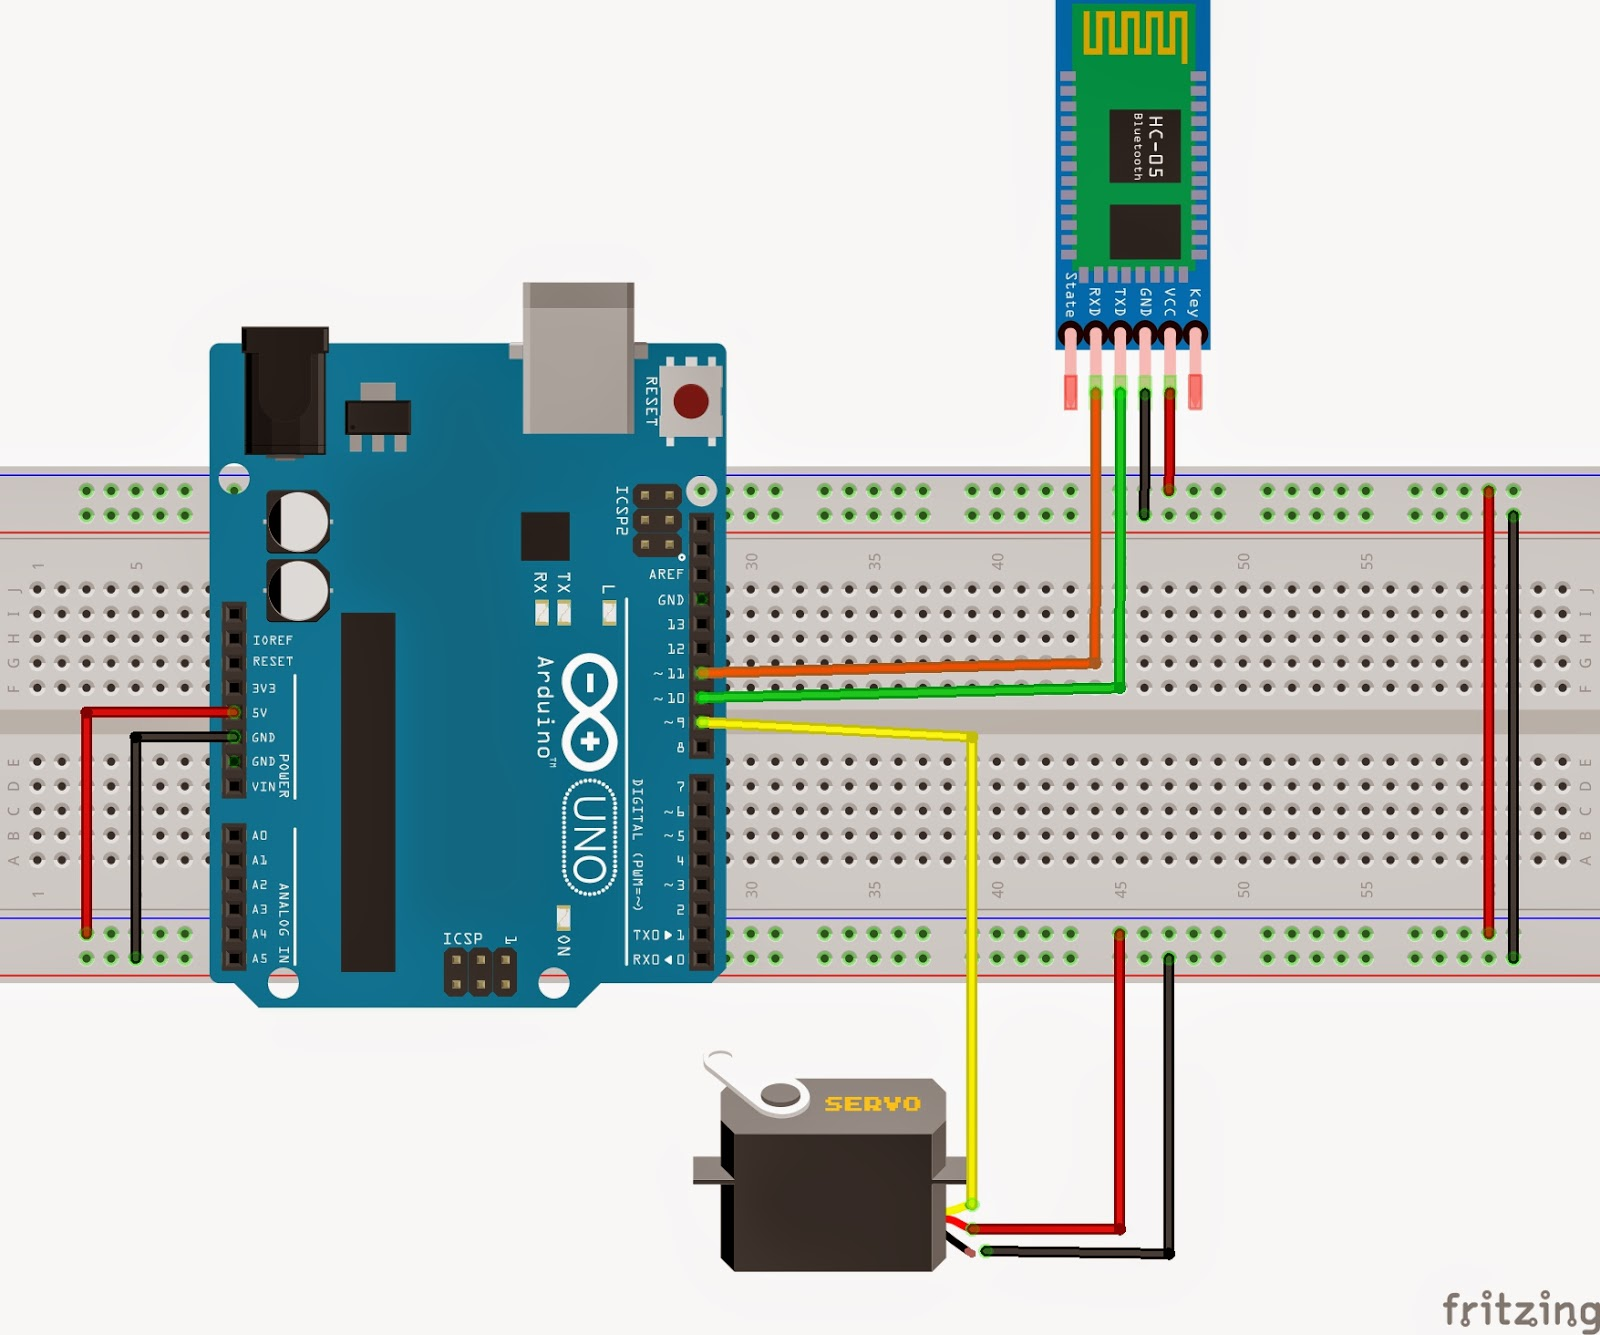 Line Follower Using Servo, RFID and Ultrasonic Sensor